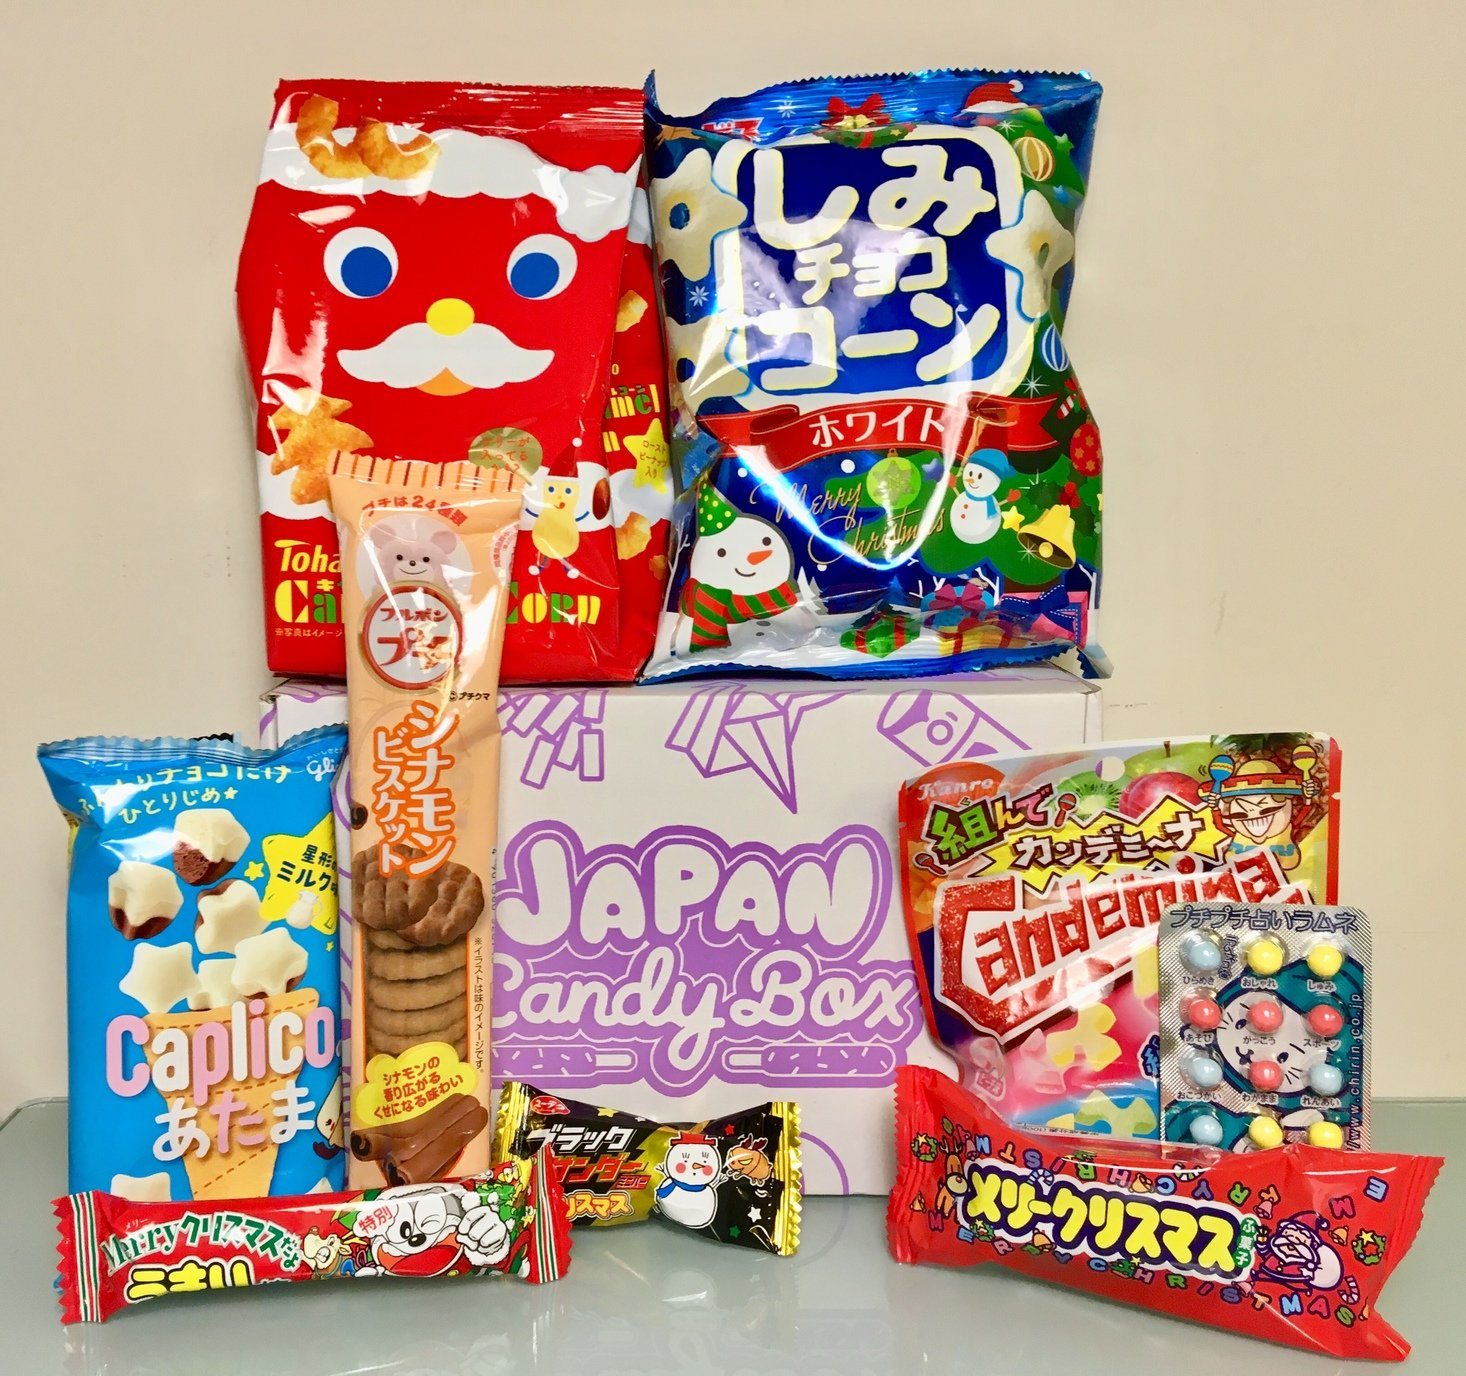 """Japan Candy Box """"Japanese Christmas"""" Review – December 2018"""